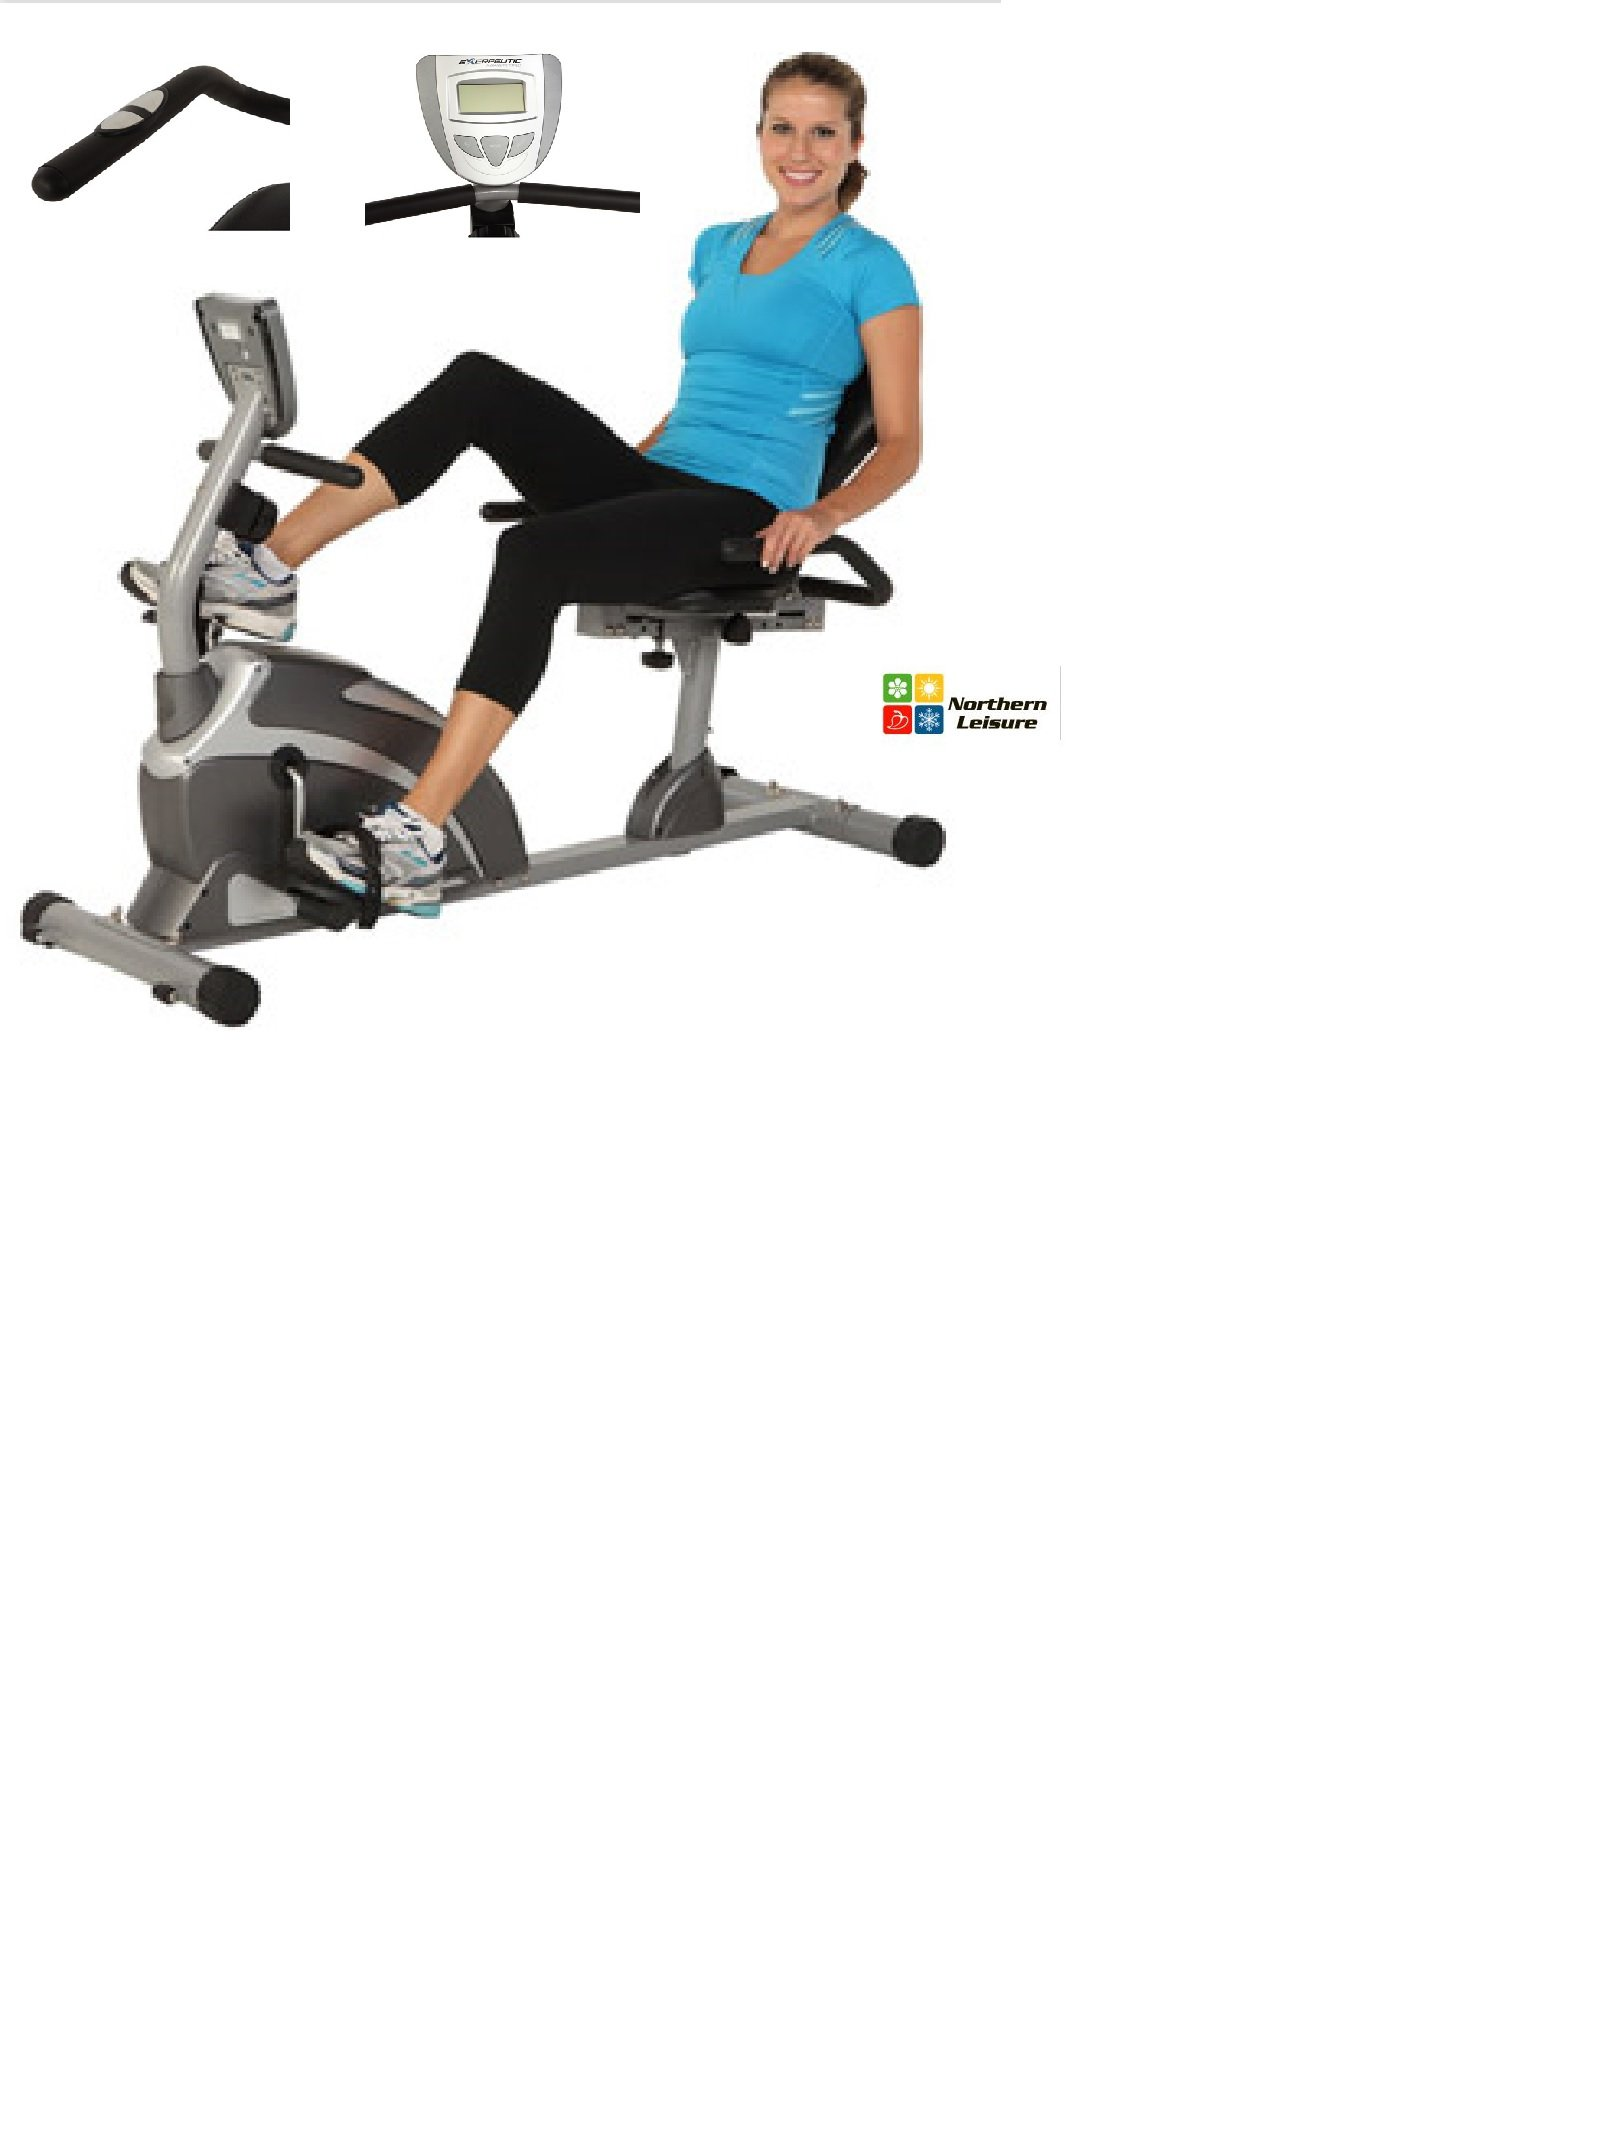 Exerpeutic 1000 High Capacity Magnetic Recumbent Bike W/ Pulse Wider Seat Extended by Exerpeutic